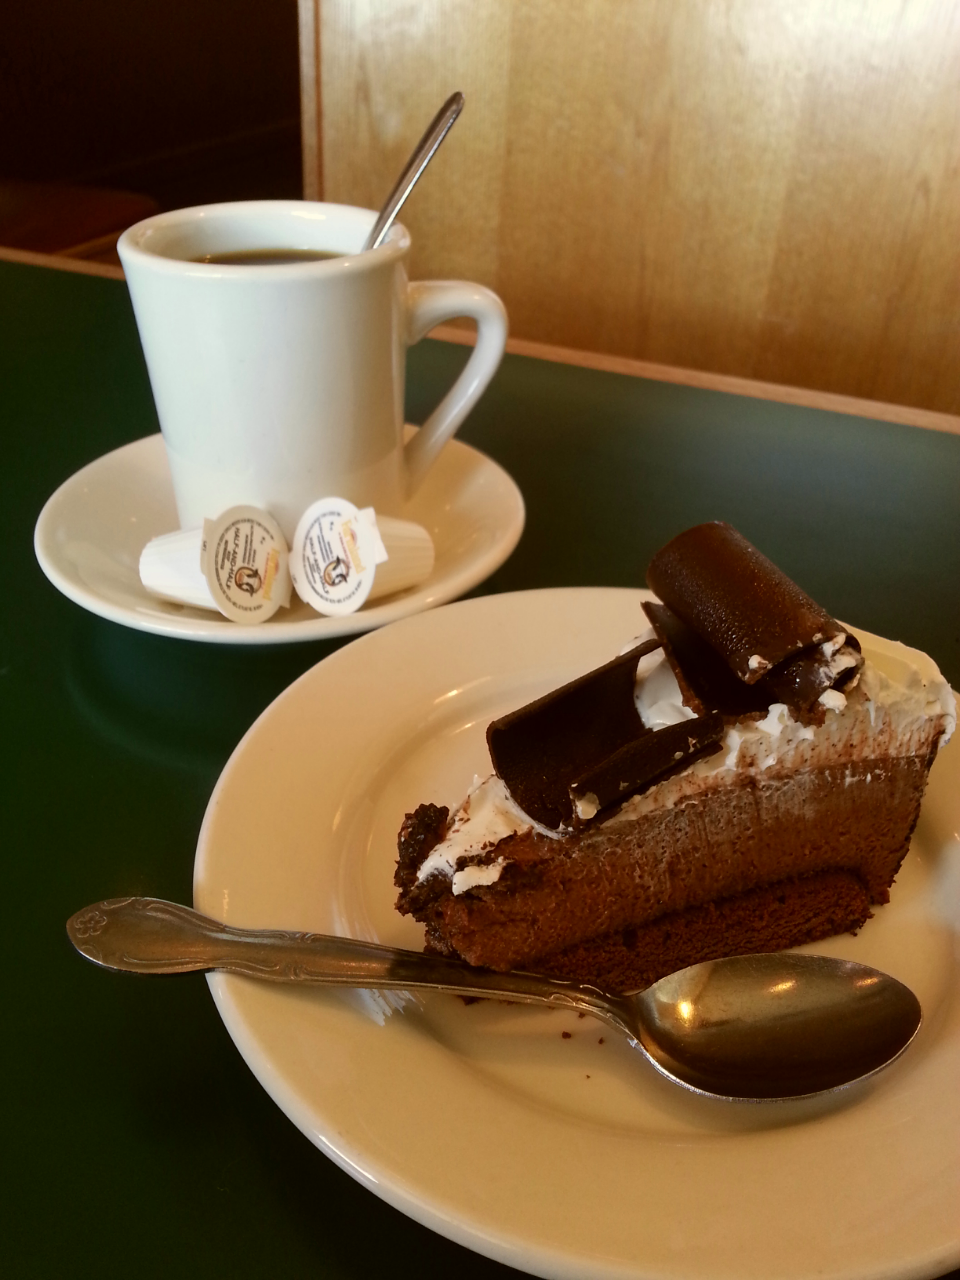 Copy of Copy of Copy of Copy of Copy of Chocolate Mousse Cake and Coffee!